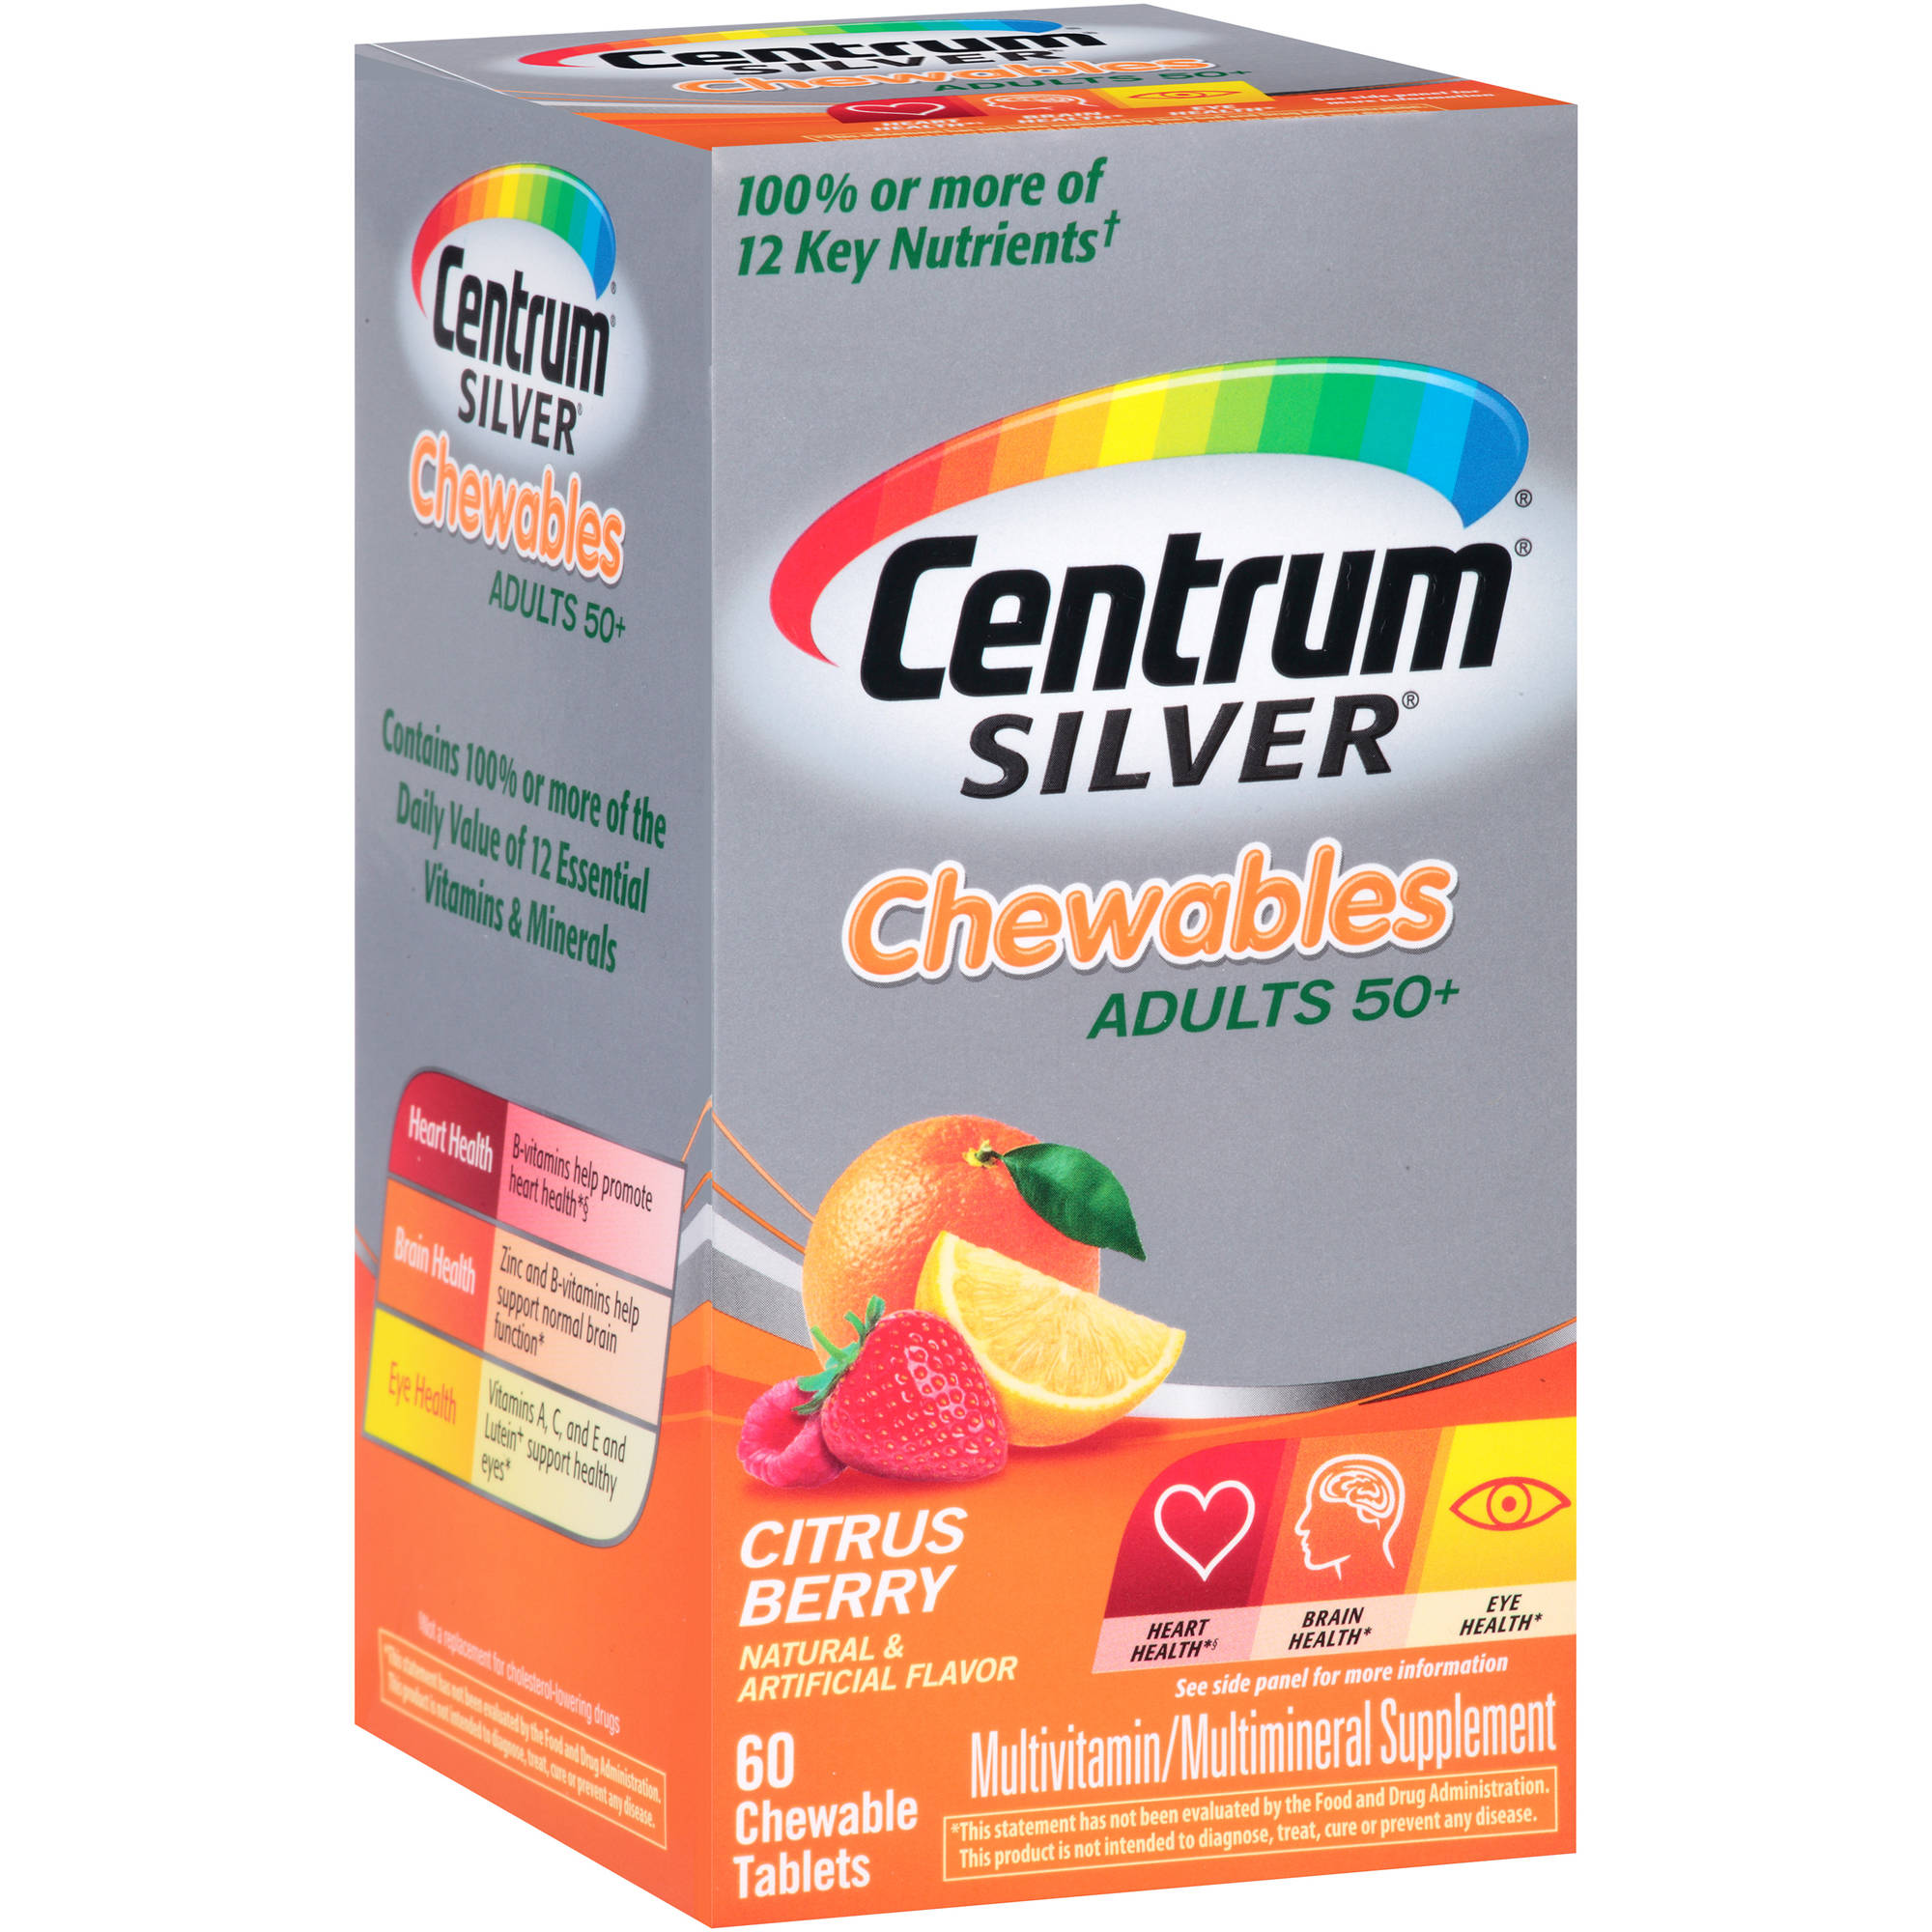 Centrum Silver Chewable Multivitamin/Multimineral Supplement in Citrus Berry Flavor 60 Count